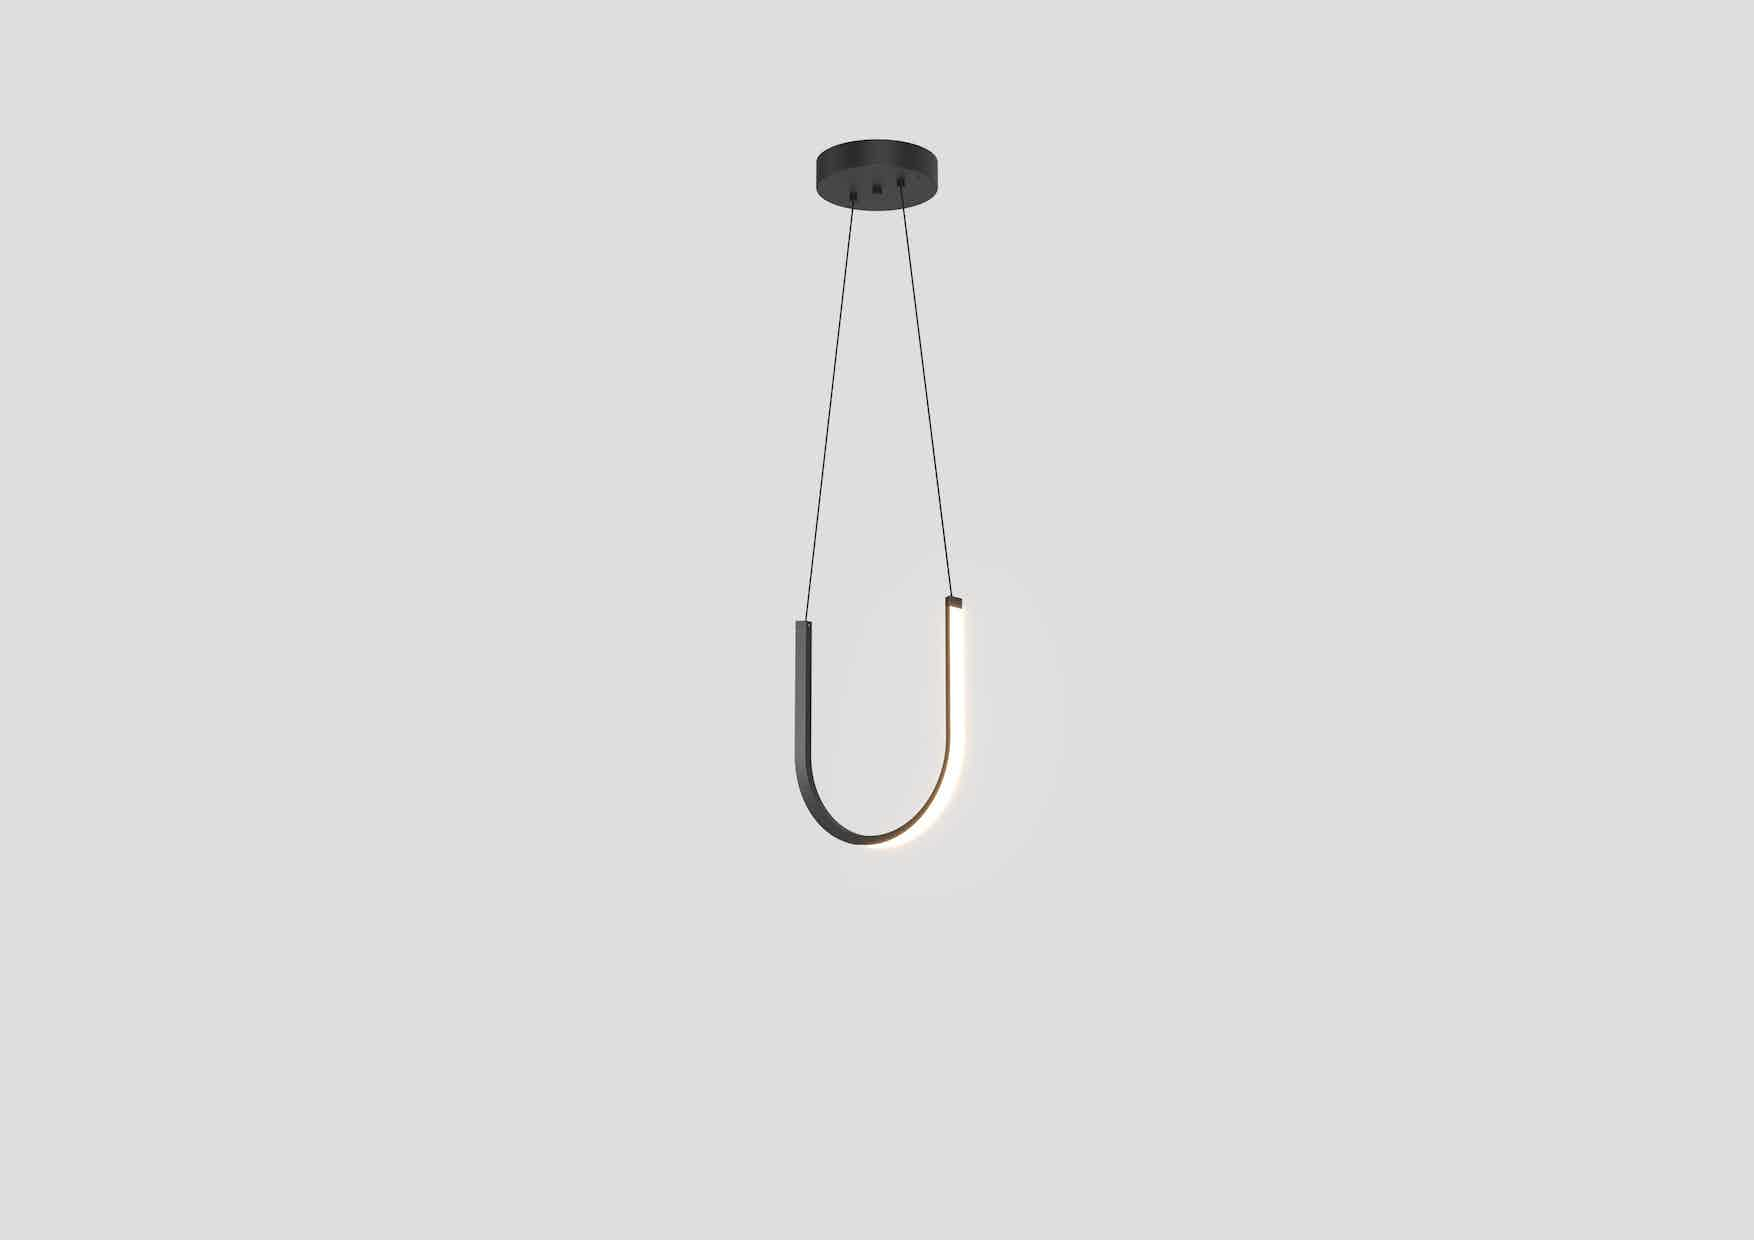 Arpel lighting u1 pendant black hanging haute living